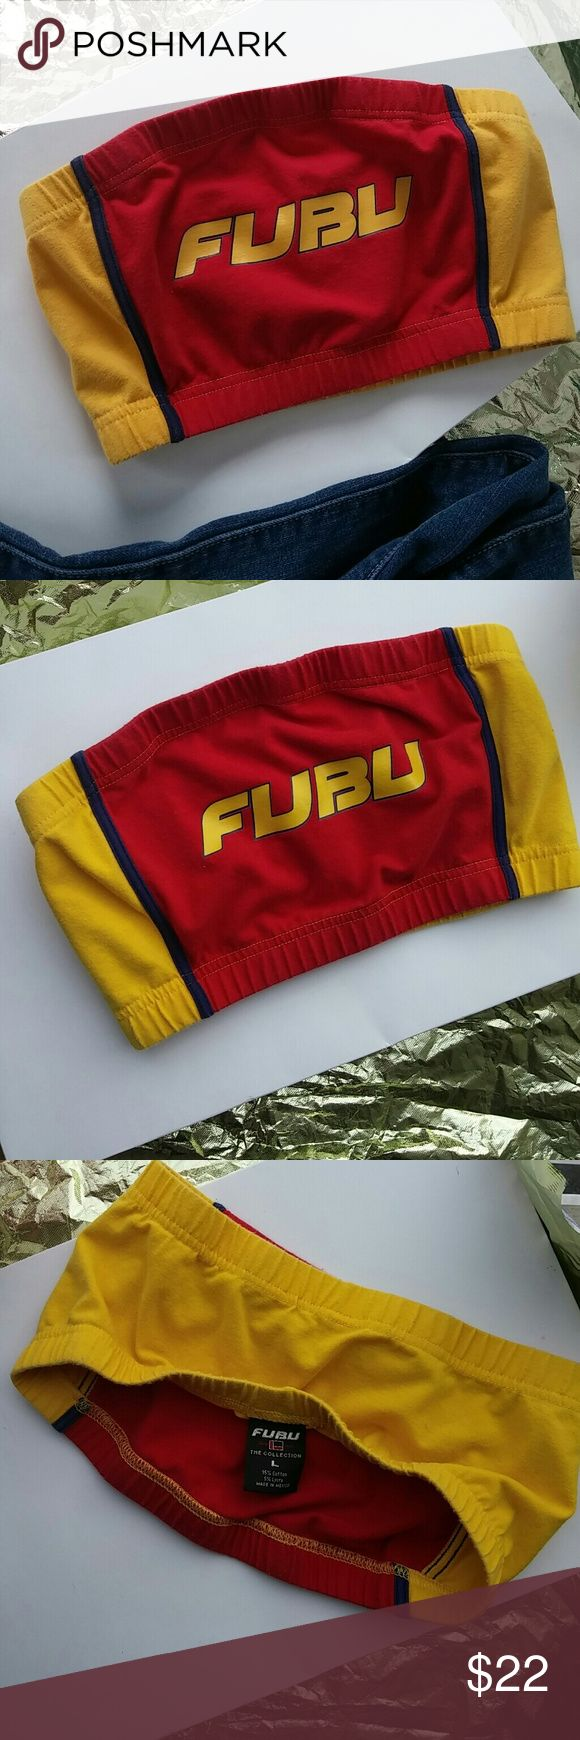 Vintage Fubu tube top Super cute vintage throwback Fubu tube top. Perfect with some baggy jeans. From late 90's. Excellent condition. Size does say large but runs smaller more like a medium. Tops